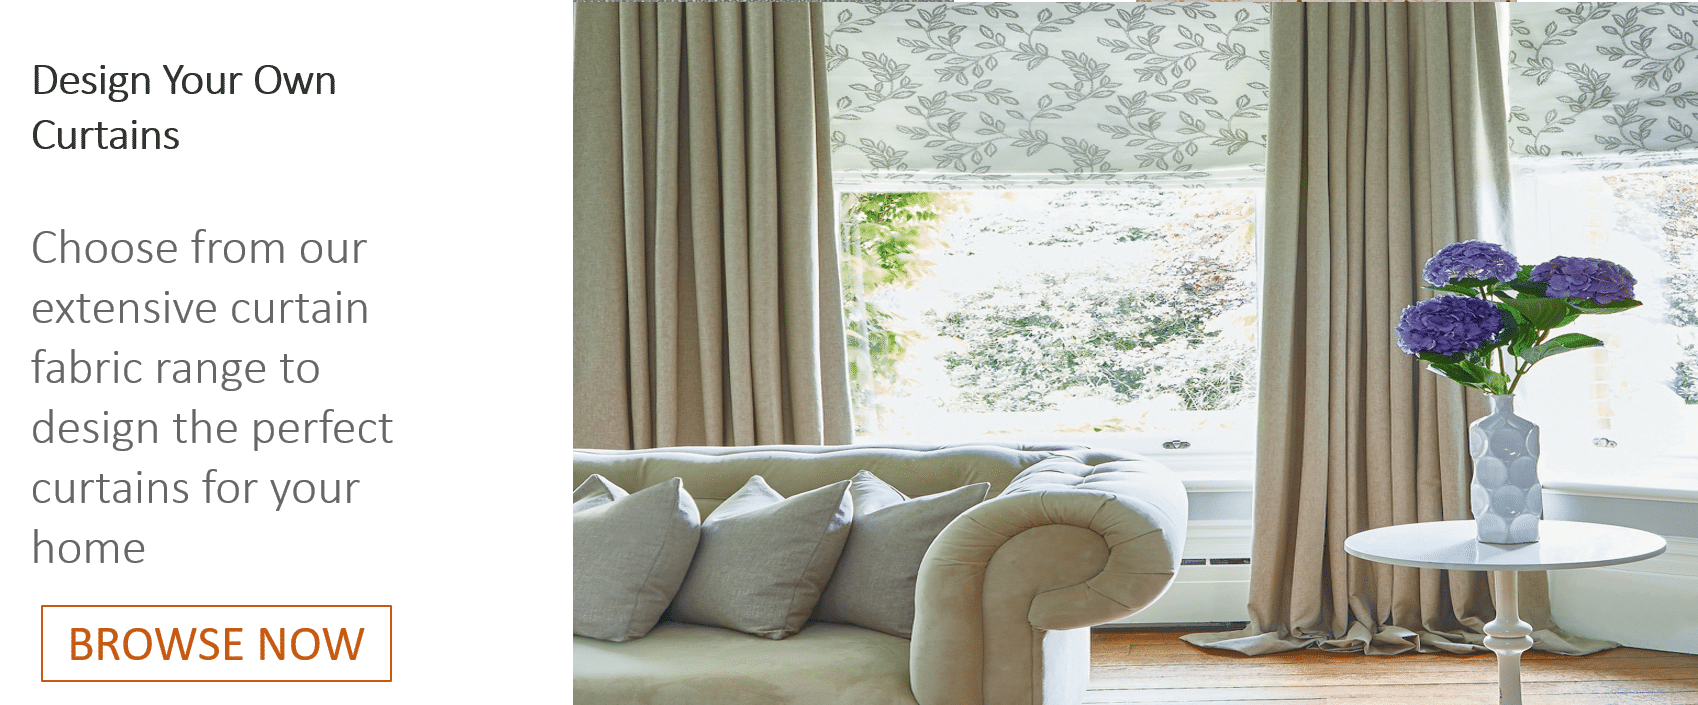 Duffy S Curtains Ireland Selling Curtains Blinds Homewares